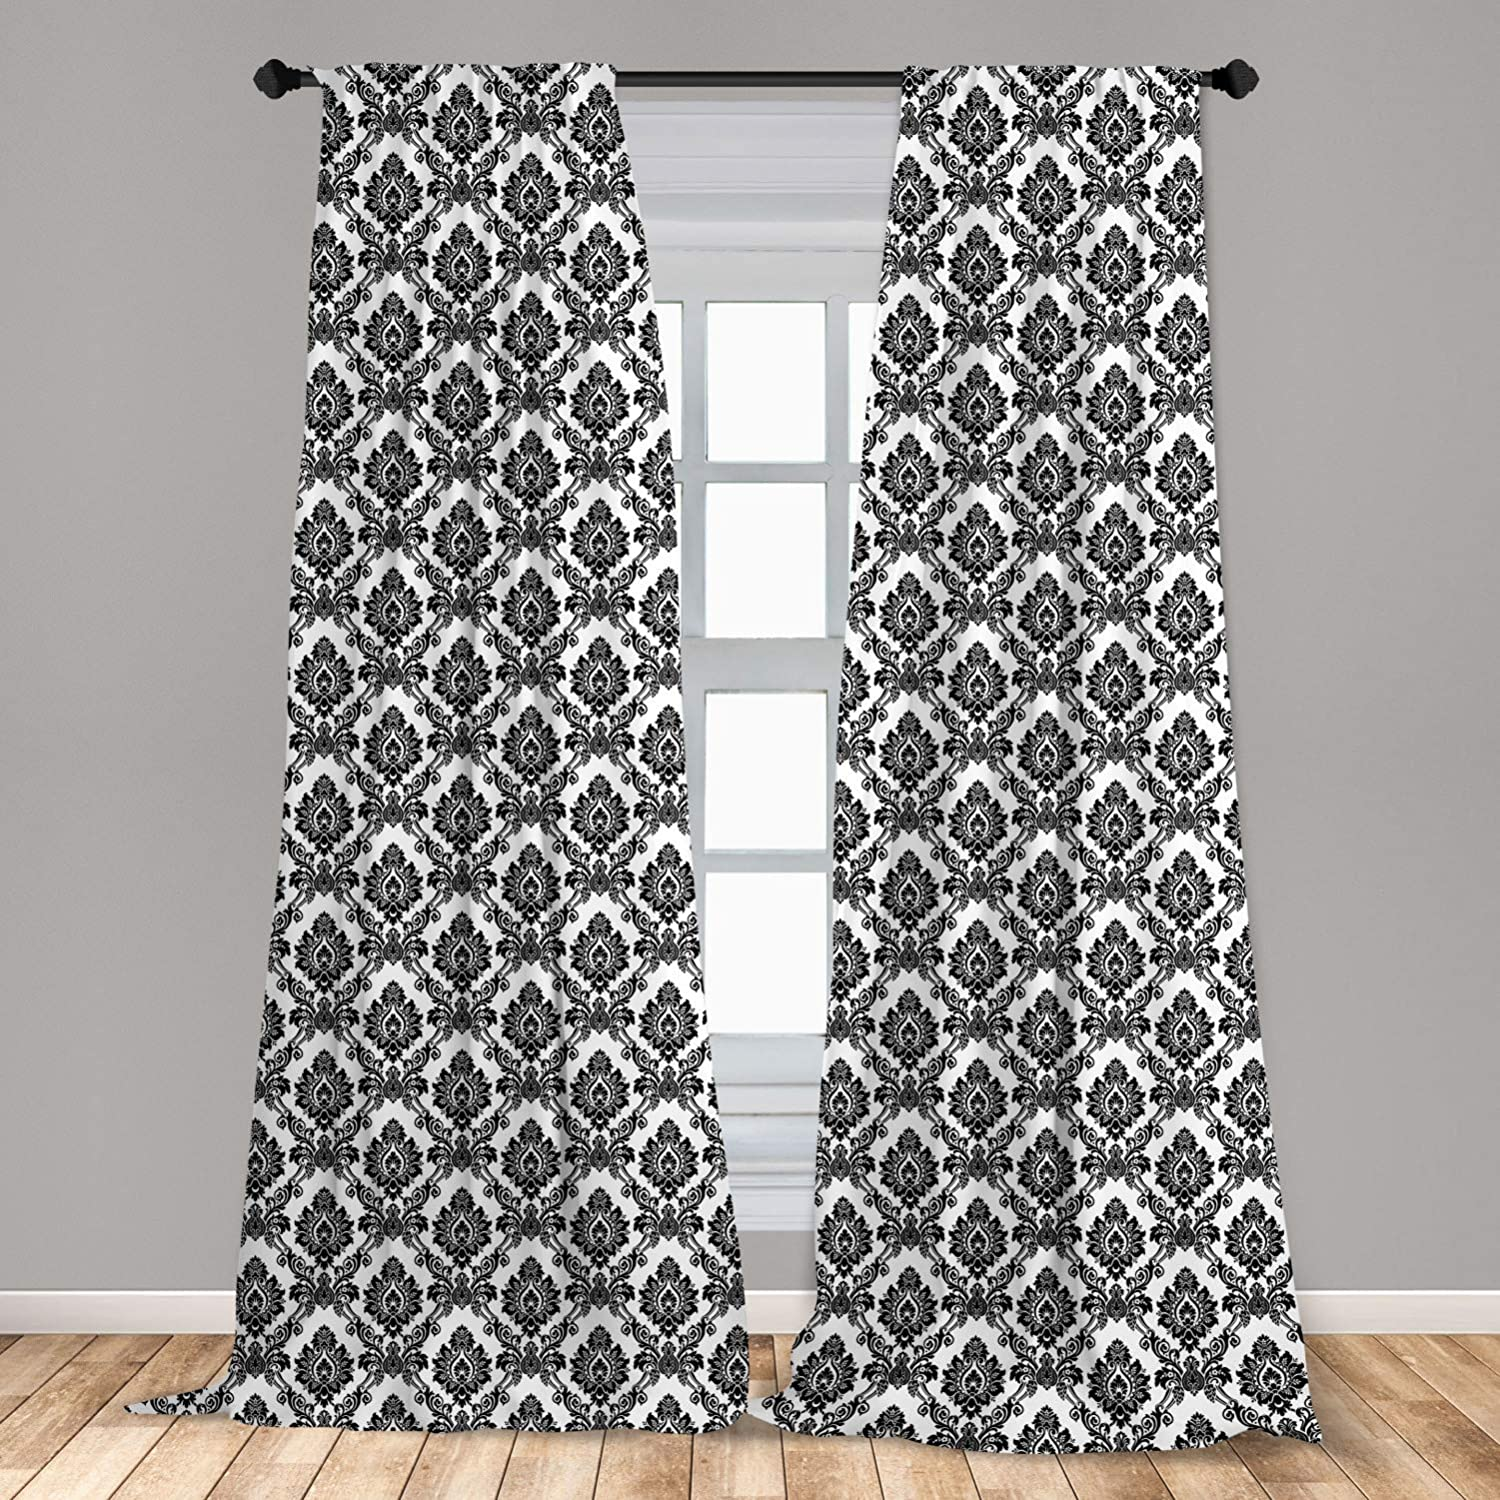 "Lunarable Damask 2 Panel Curtain Set, Antique Classic Damask Flowers Pattern Traditional Artwork Design Monochrome, Lightweight Window Treatment Living Room Bedroom Decor, 56"" x 63"", White Black"